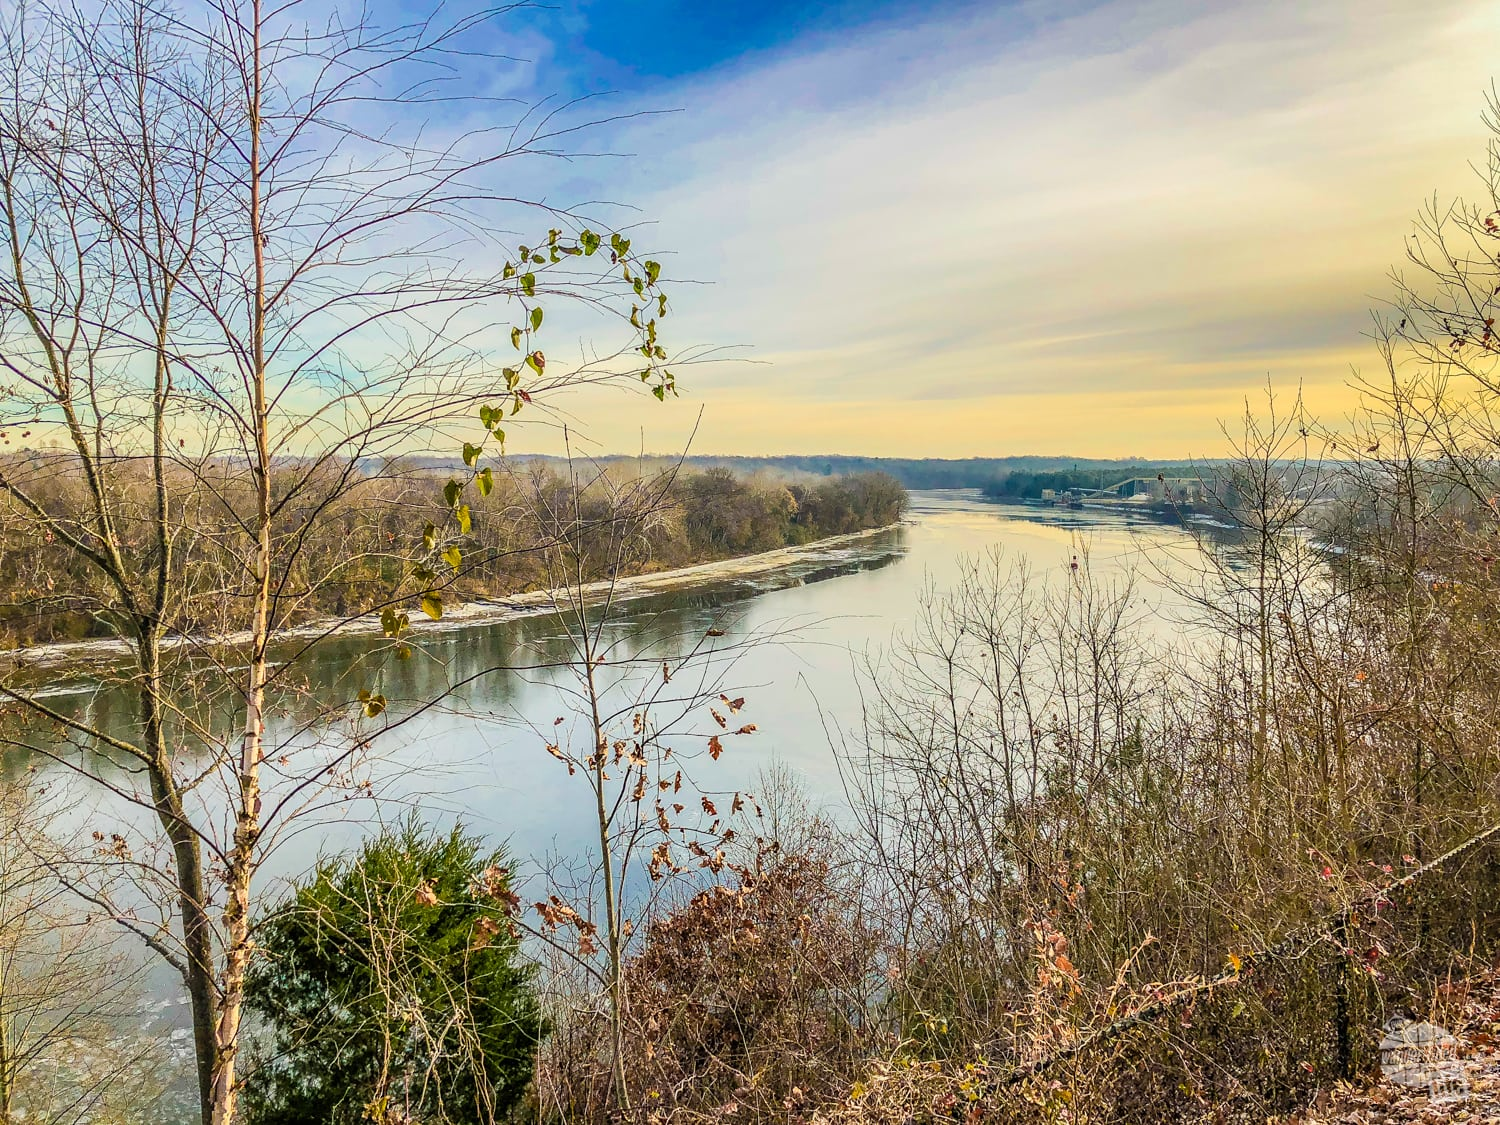 The James River from Drewery's Bluff